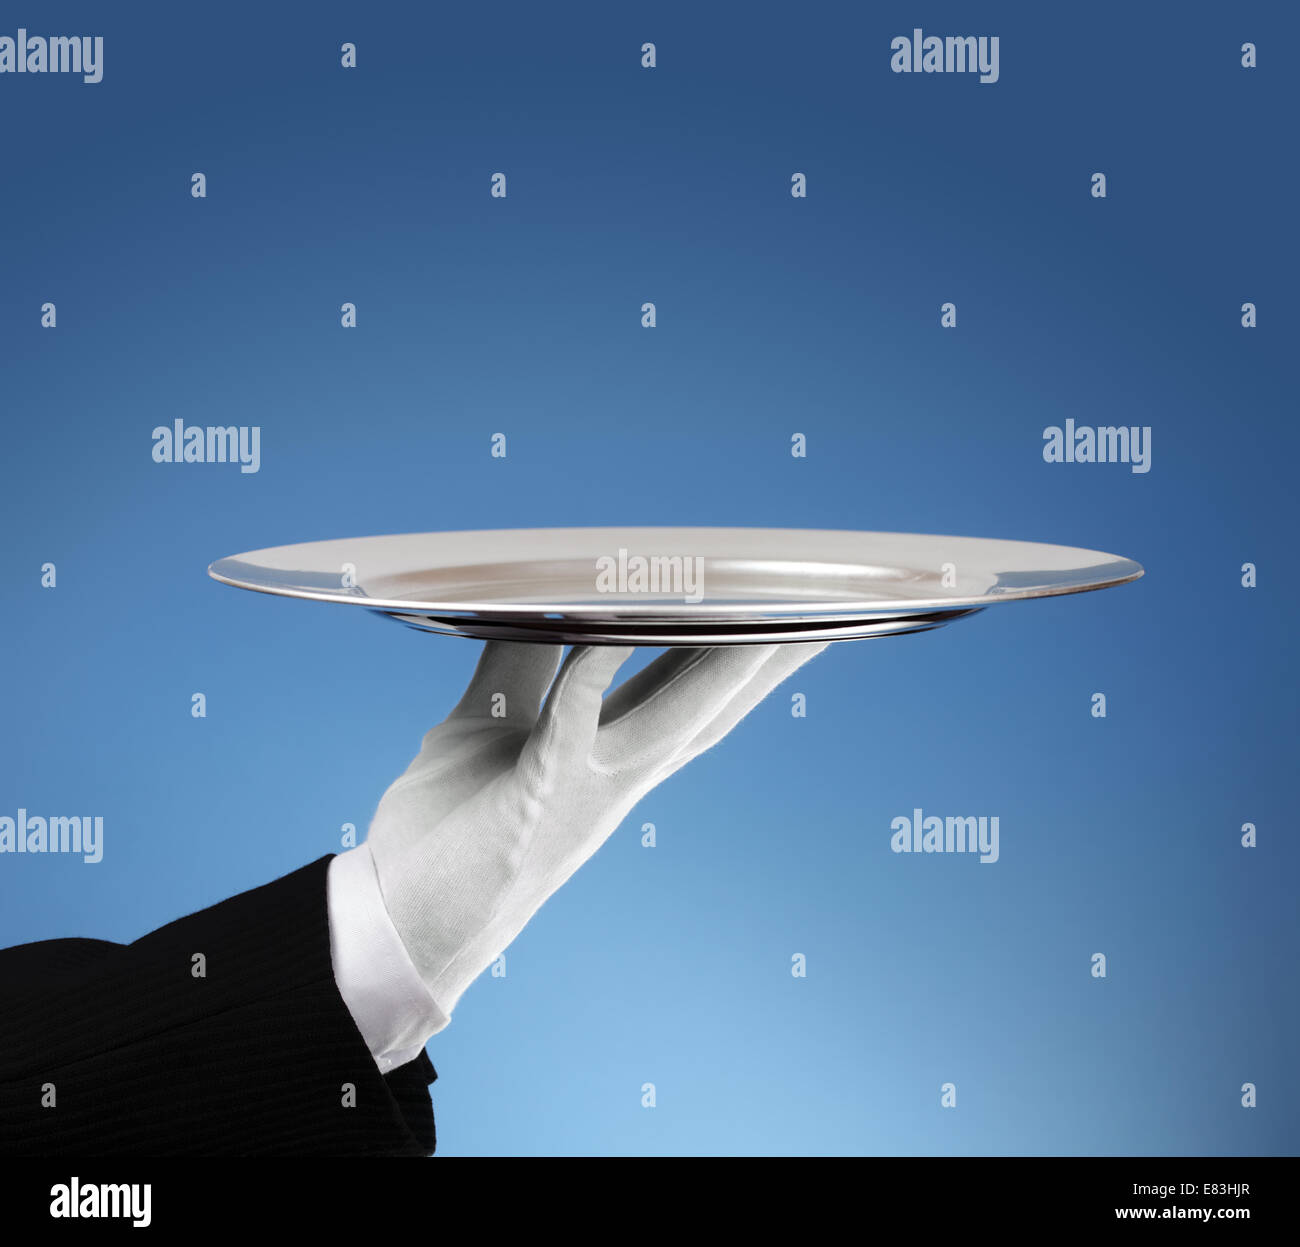 Waiter with empty silver tray - Stock Image